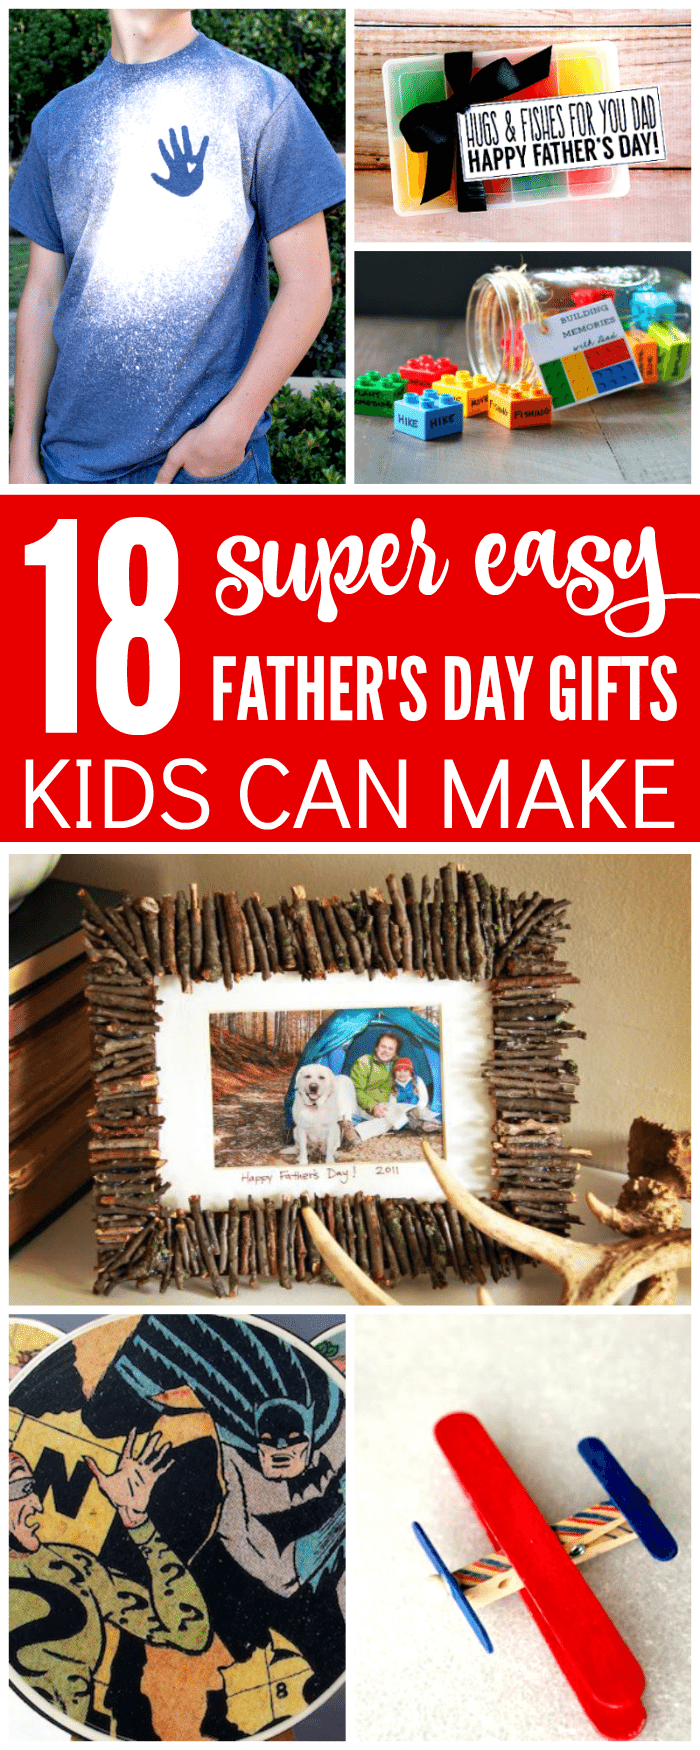 Target Monthly Box: 18 Easy Father's Day Gifts Kids Can Make